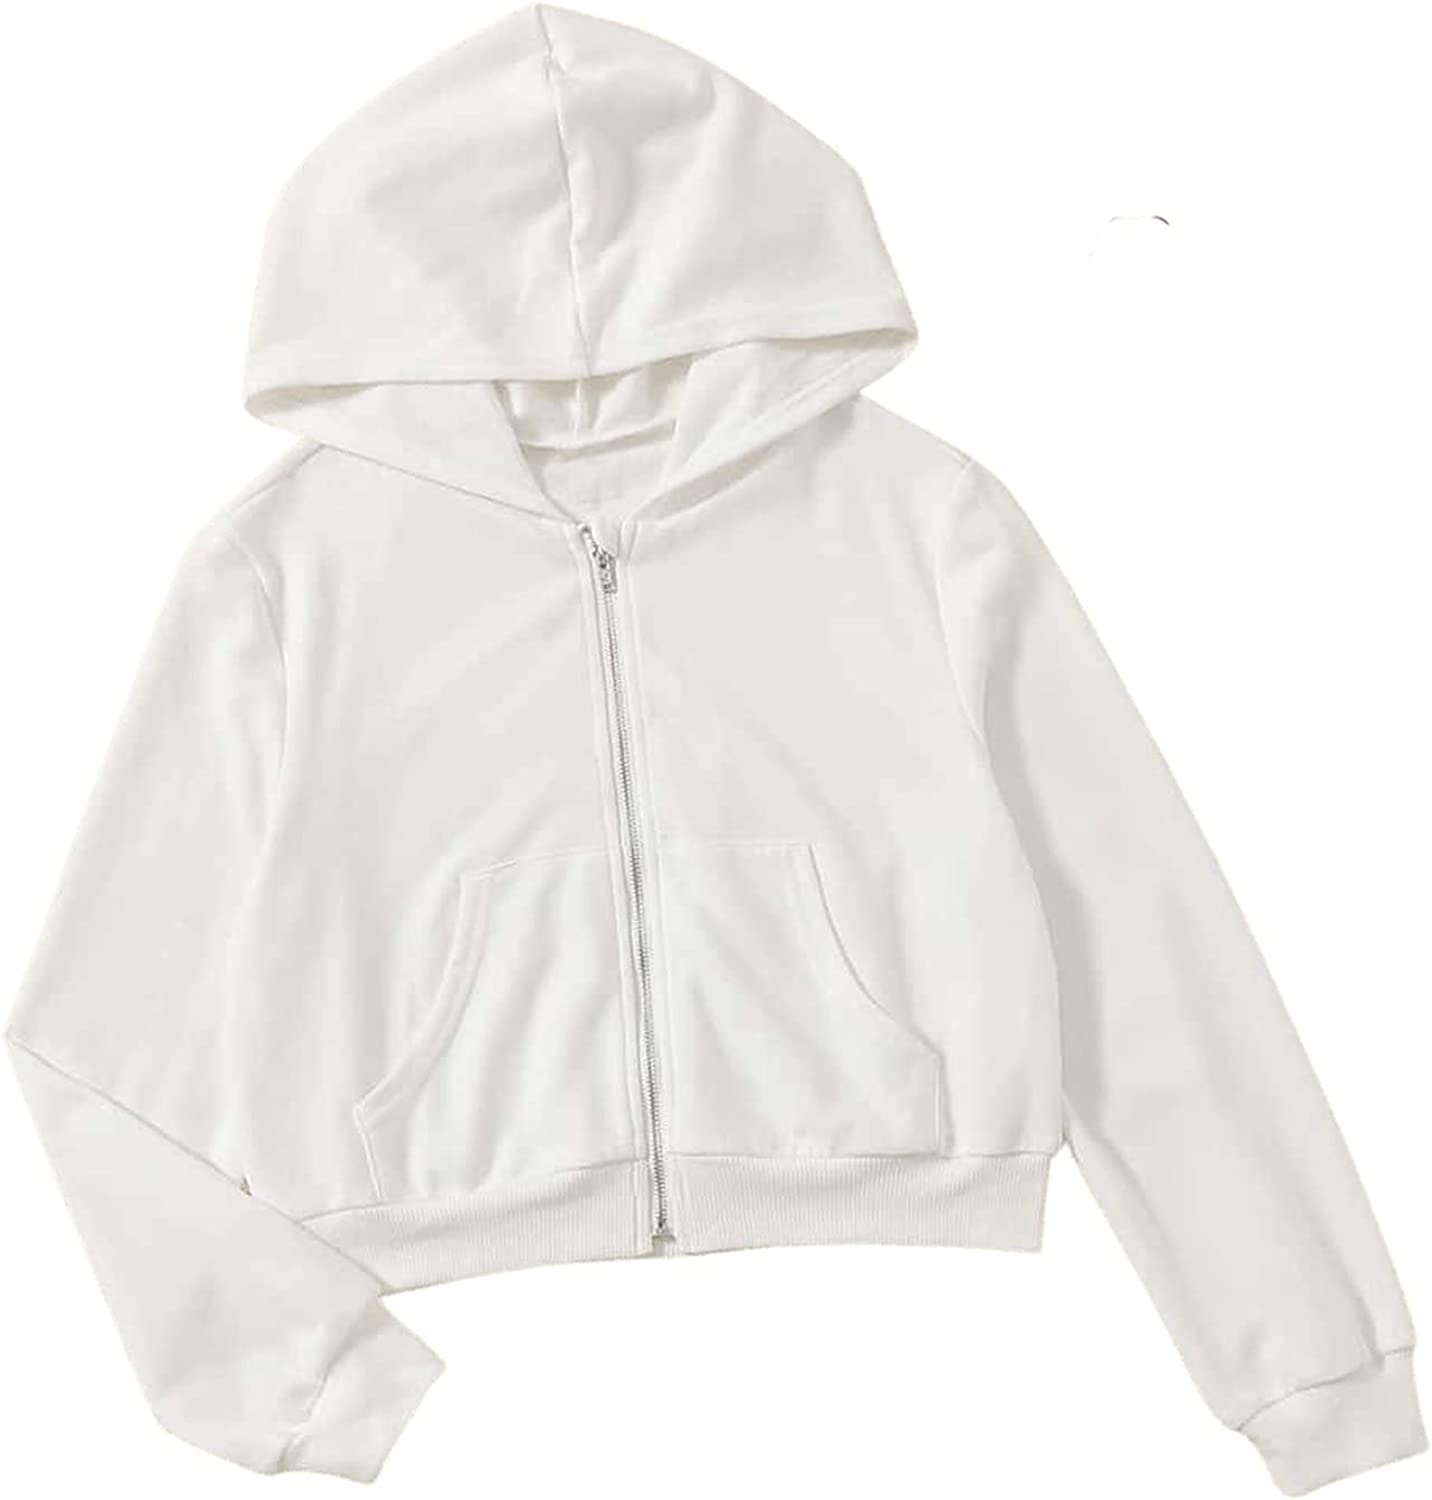 Floerns Women's Casual Long Sleeve Zip Up Cropped Hoodie Jacket with Pockets White